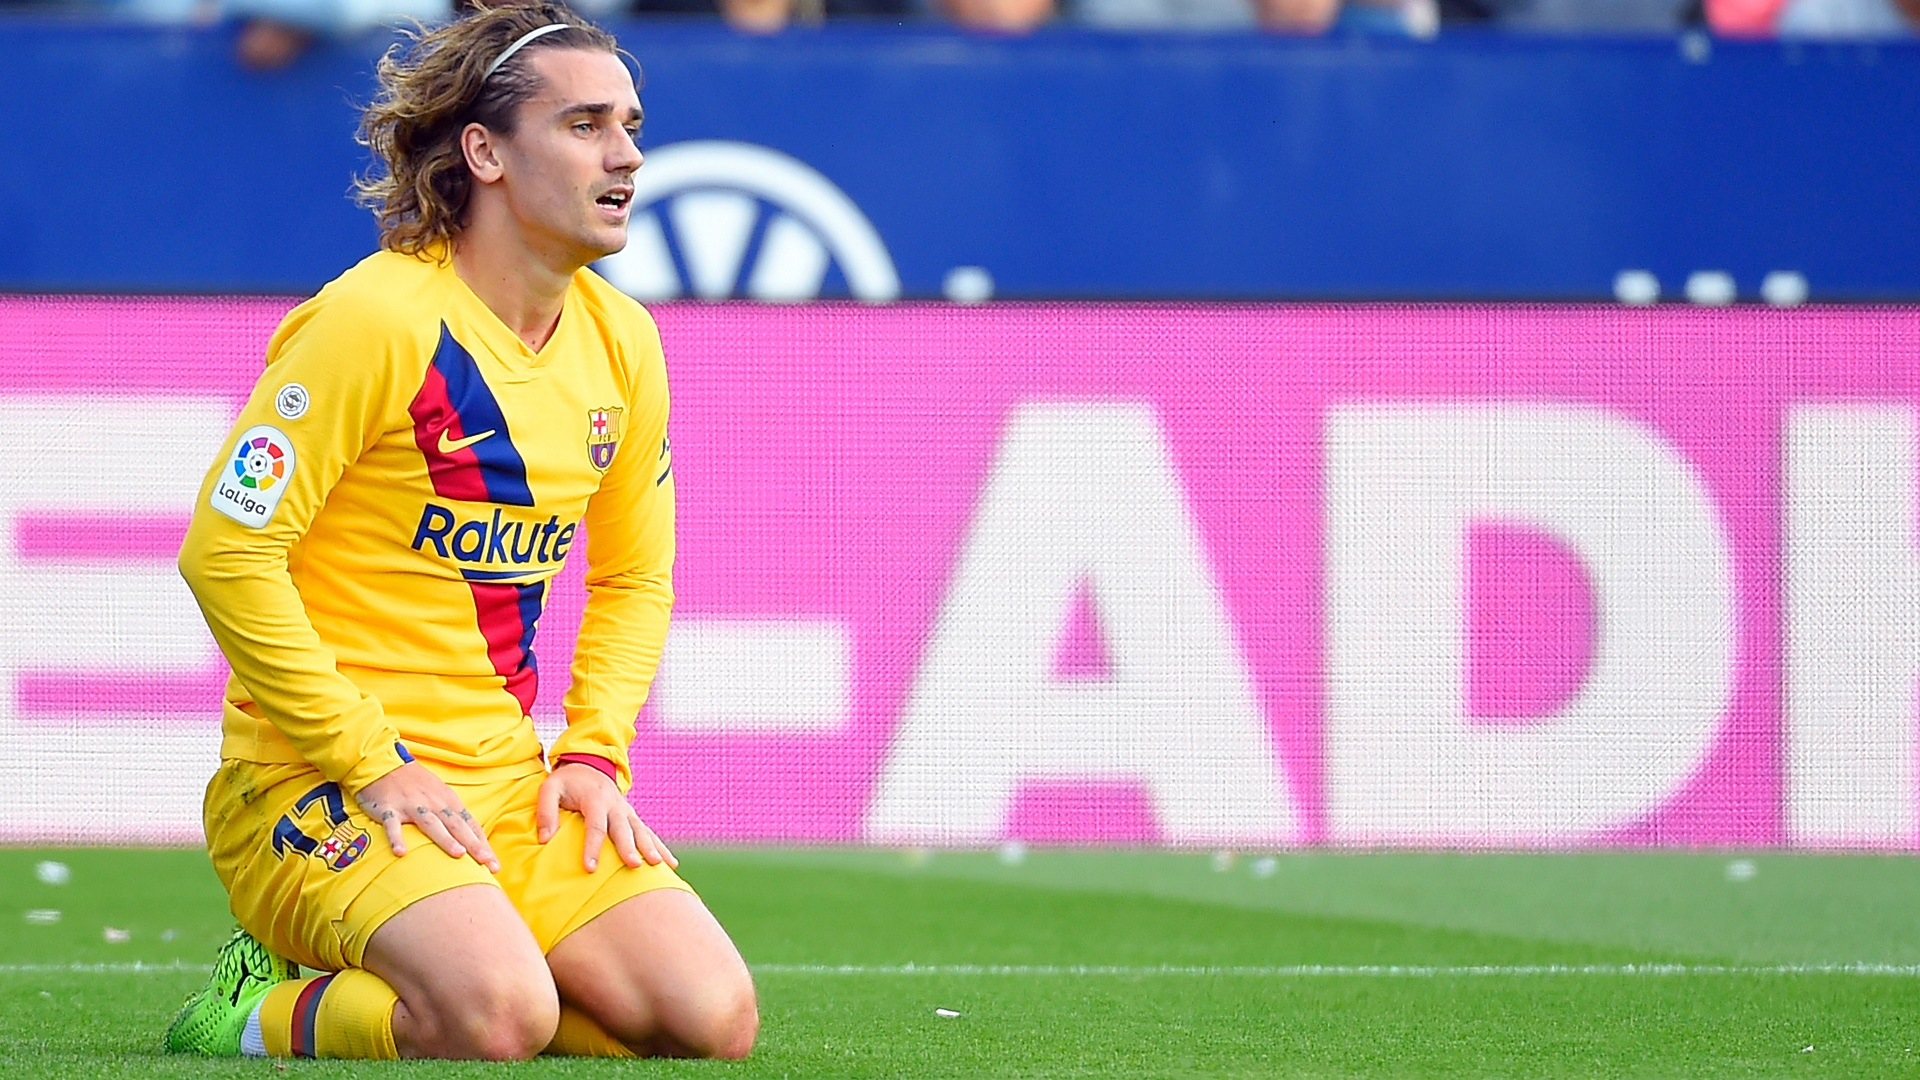 Griezmann needs time to match huge expectations at Barcelona, says Deschamps